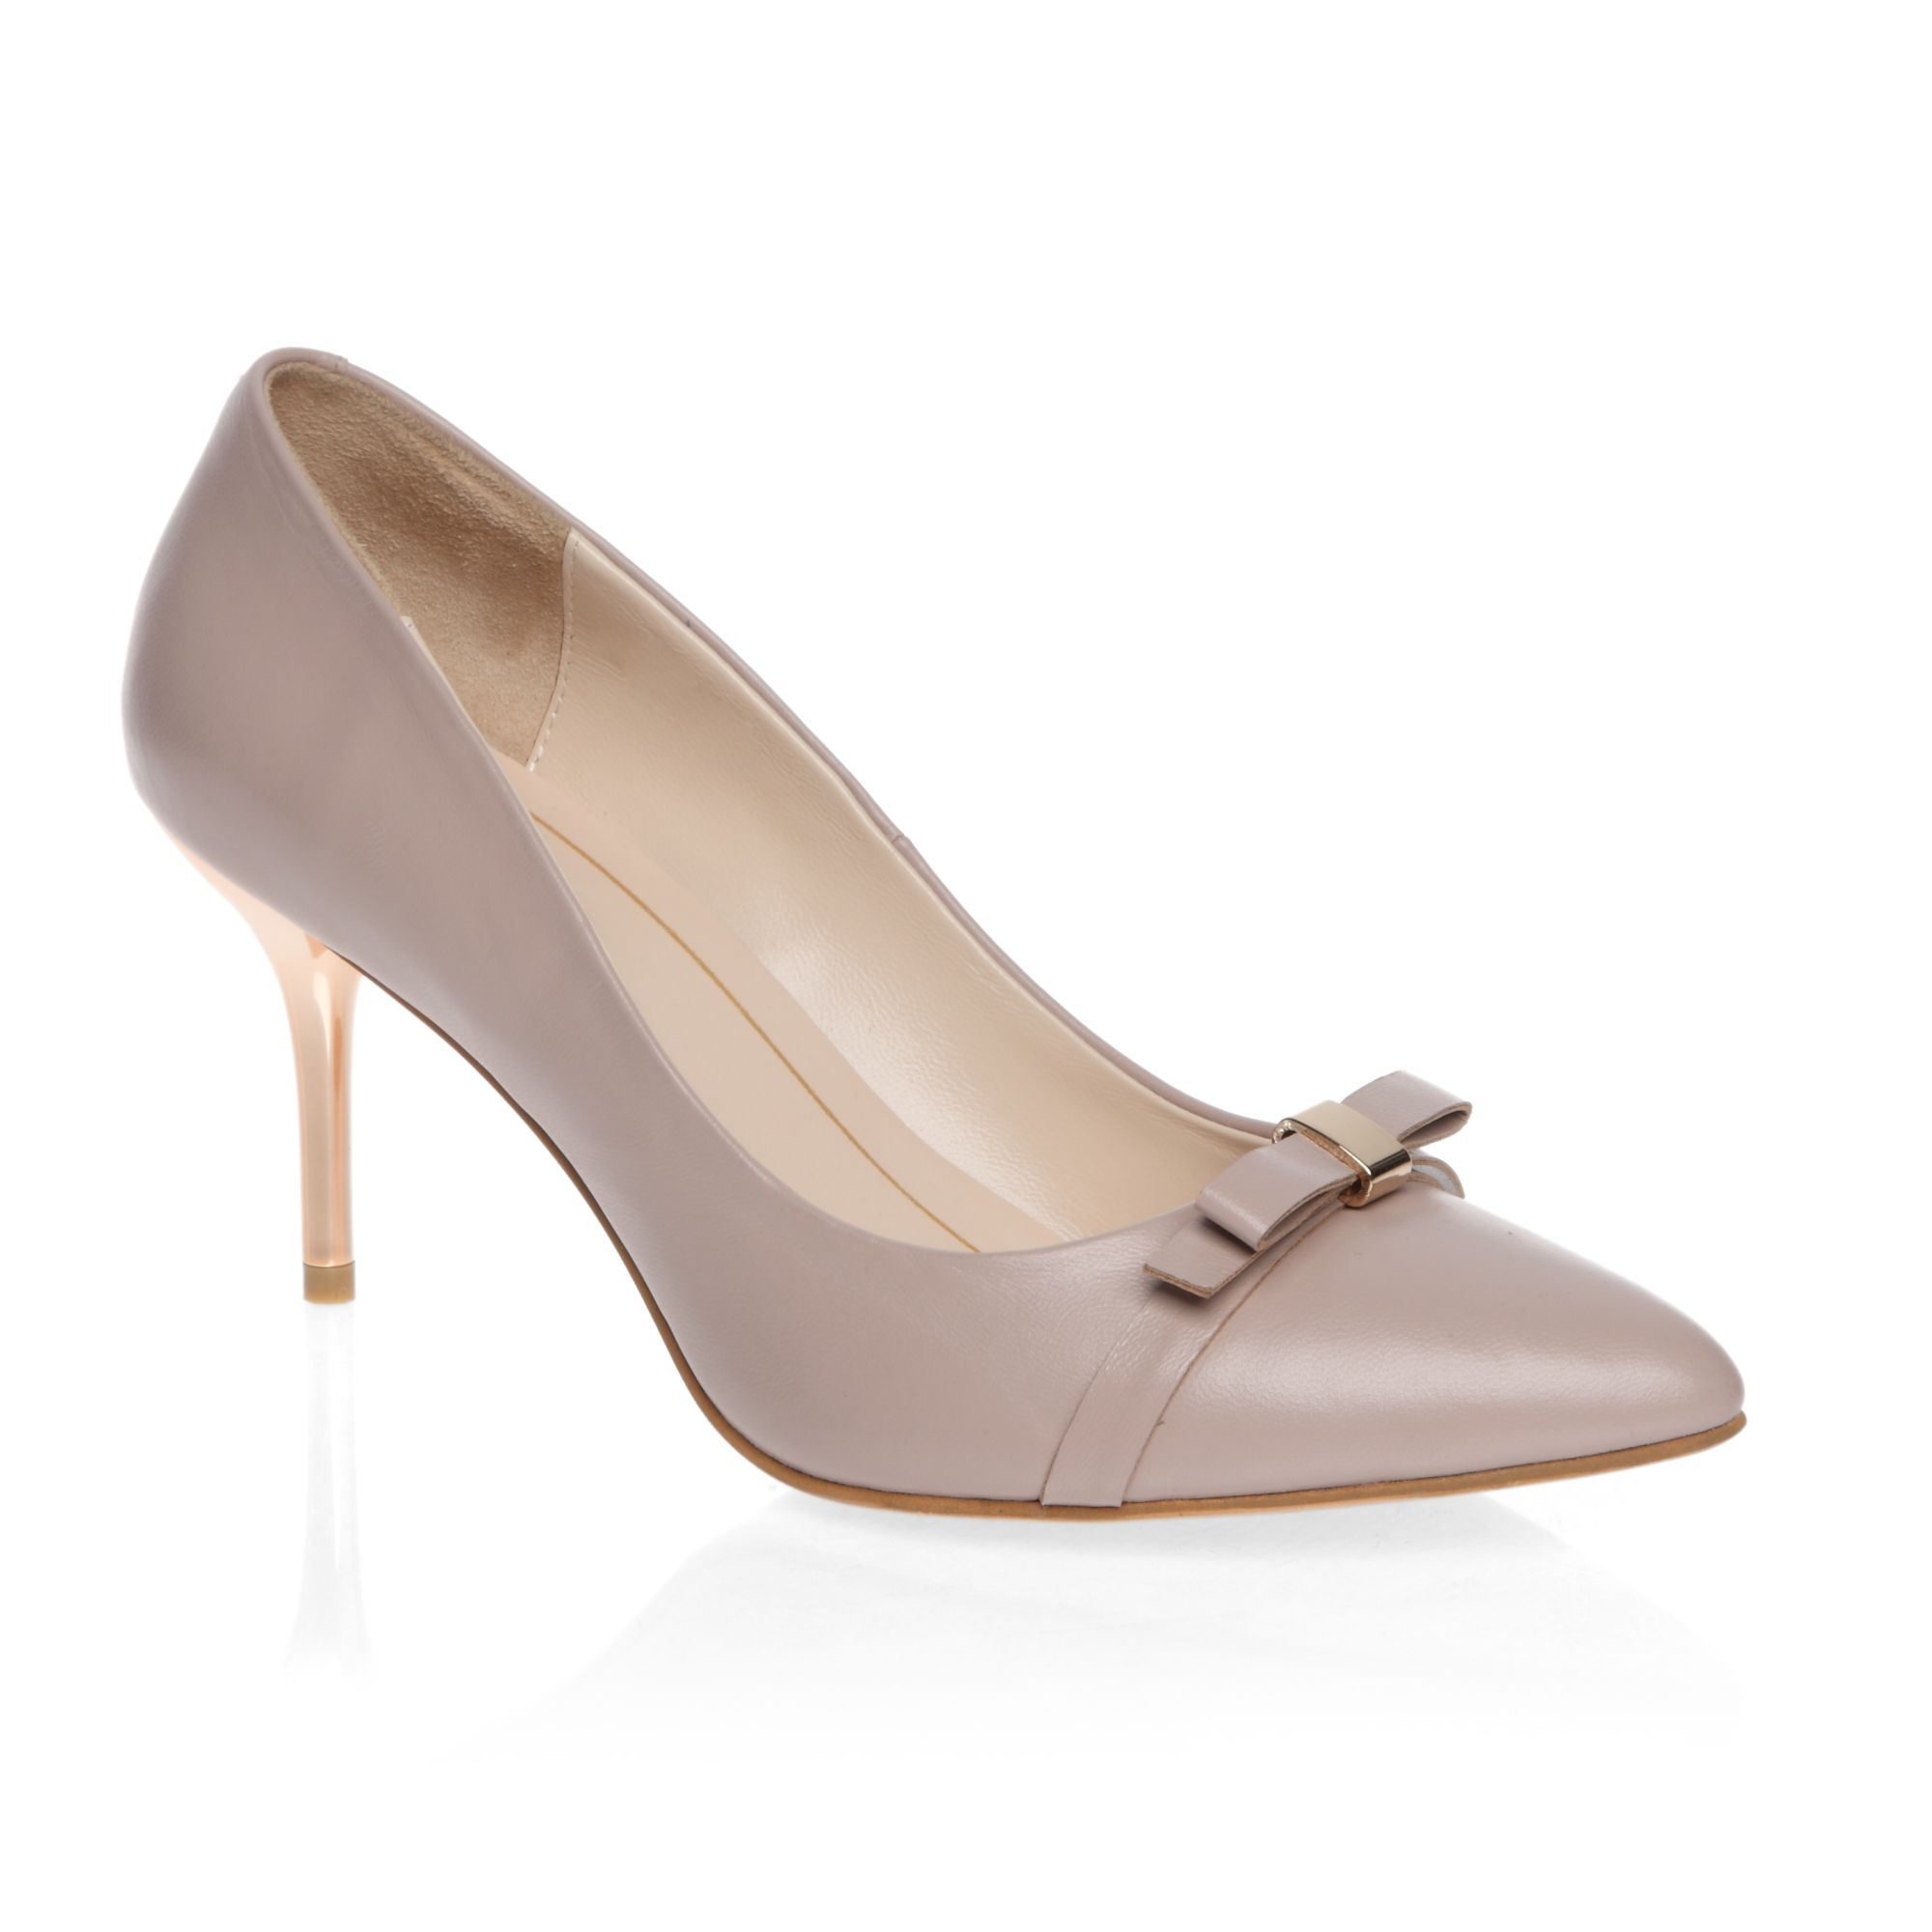 Metal heeled pointed court shoes